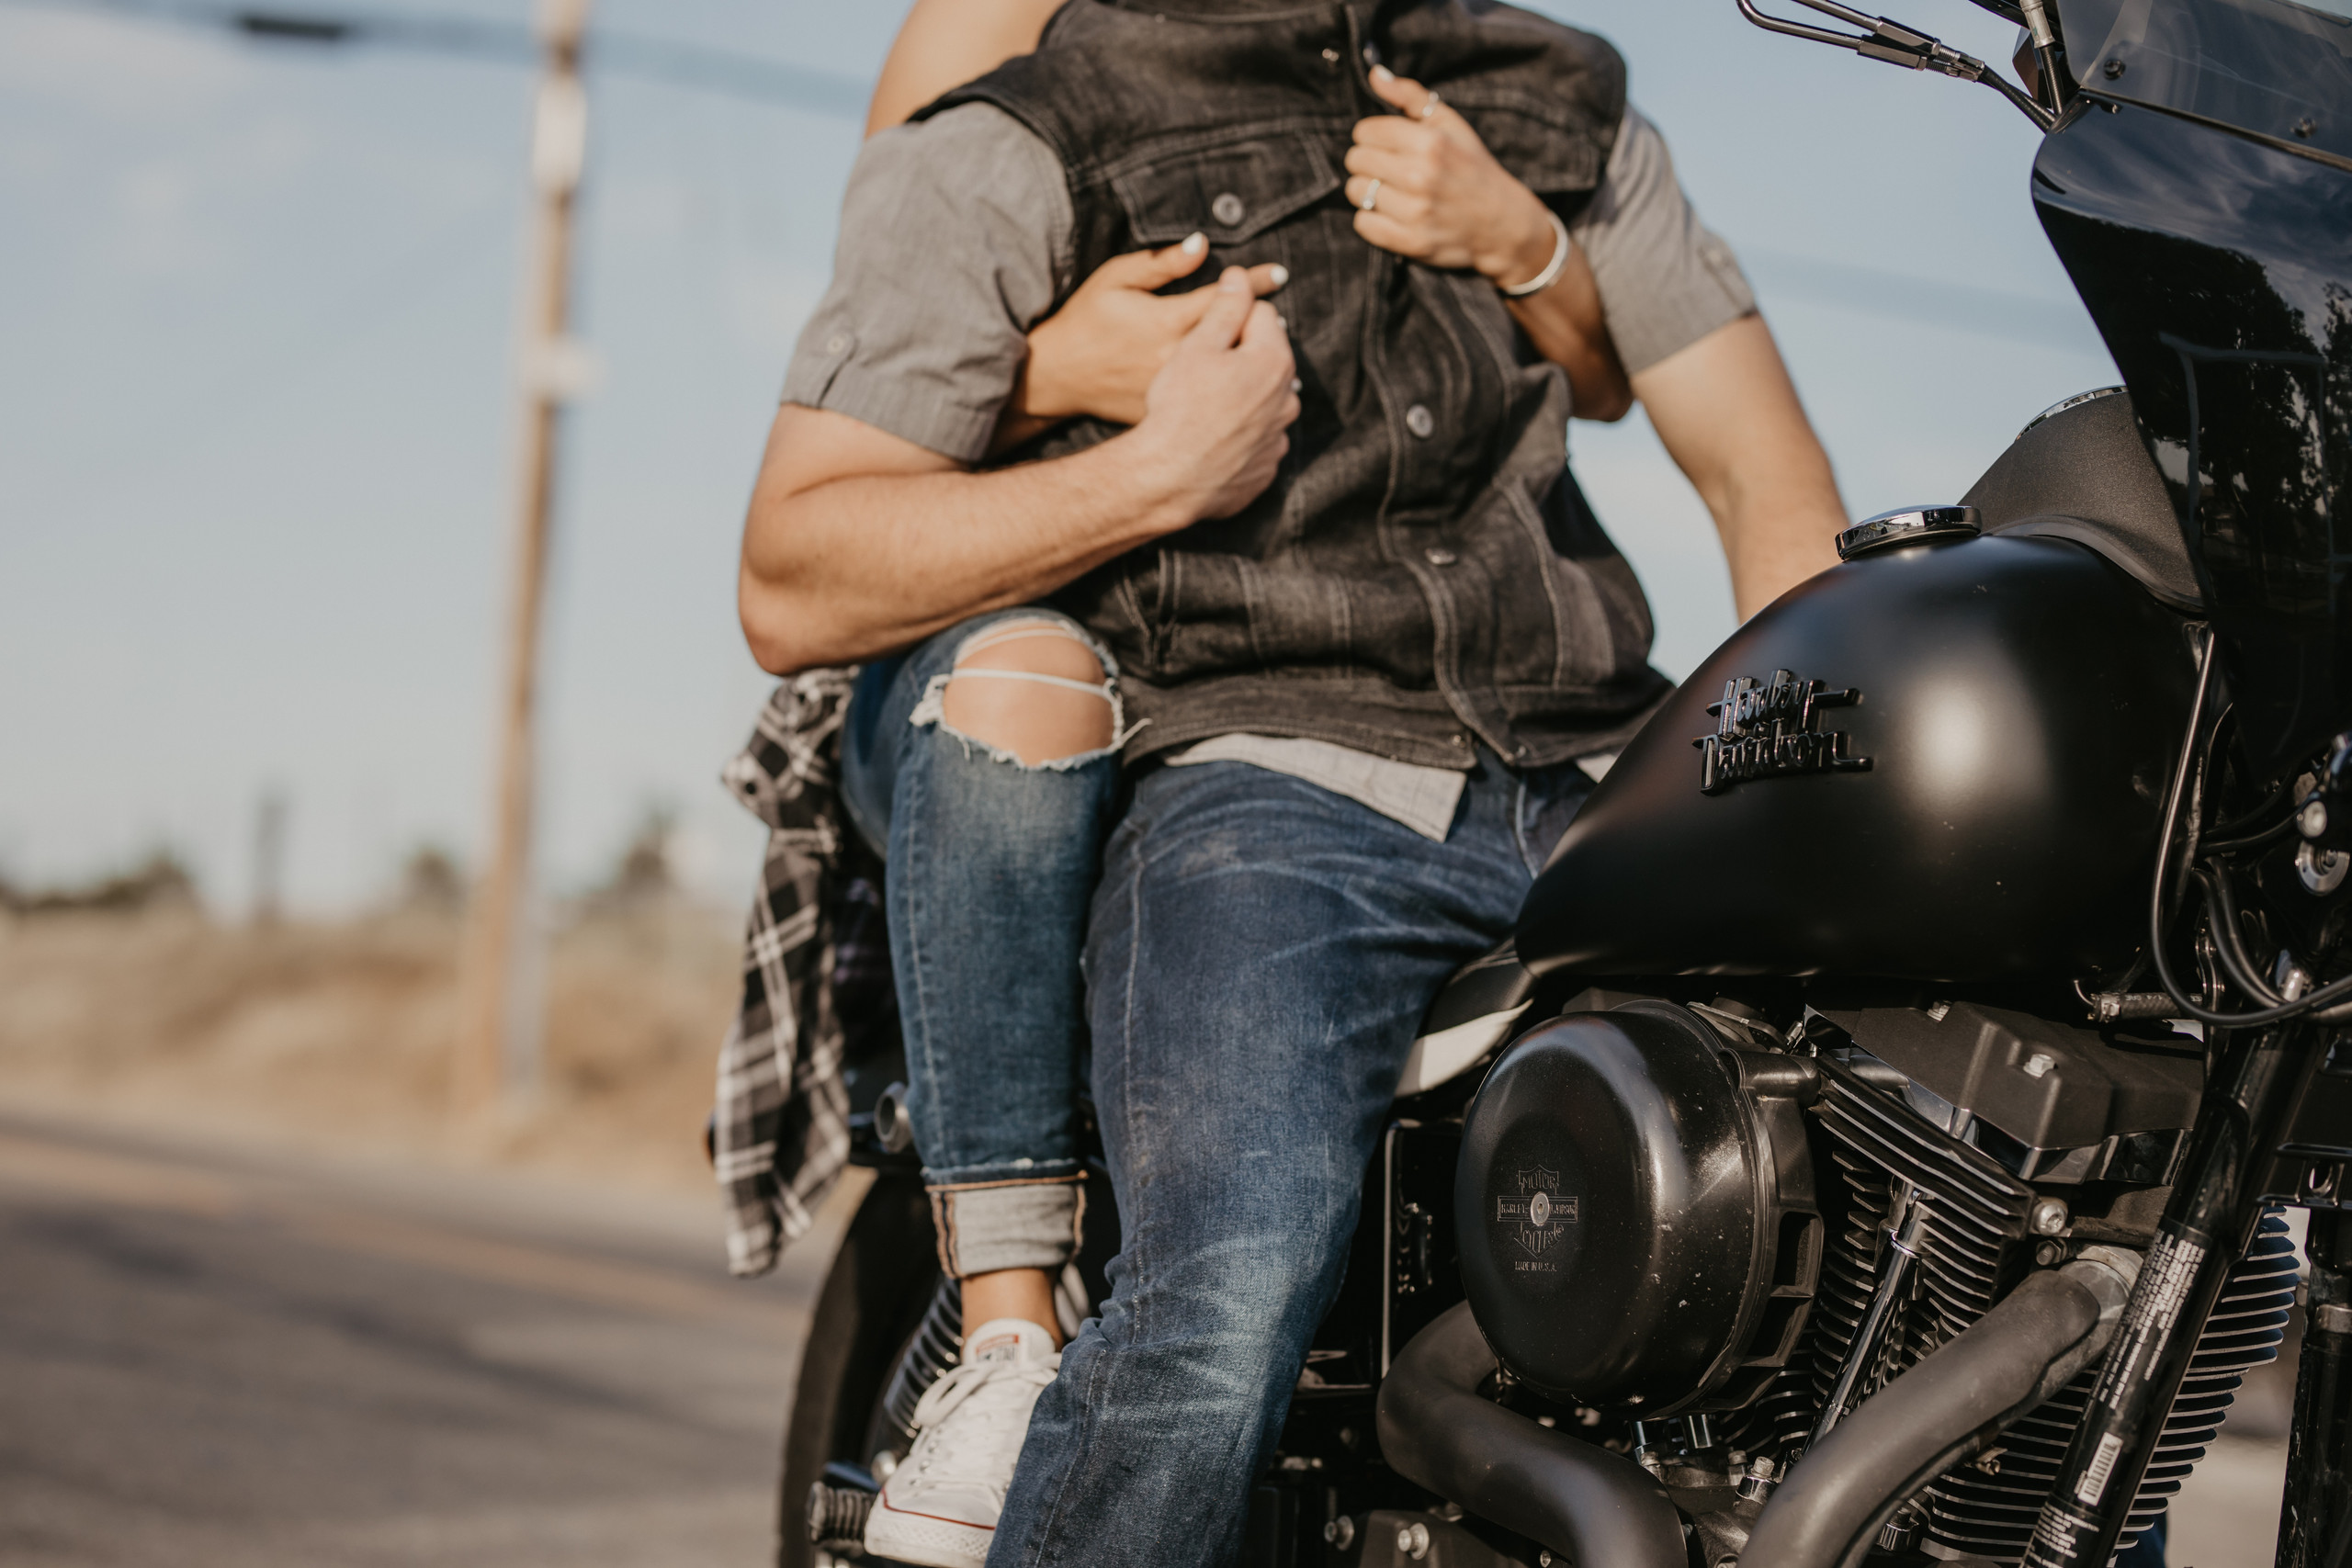 Adventure Engagement Session in Jamestown, CA with Harley Davidson